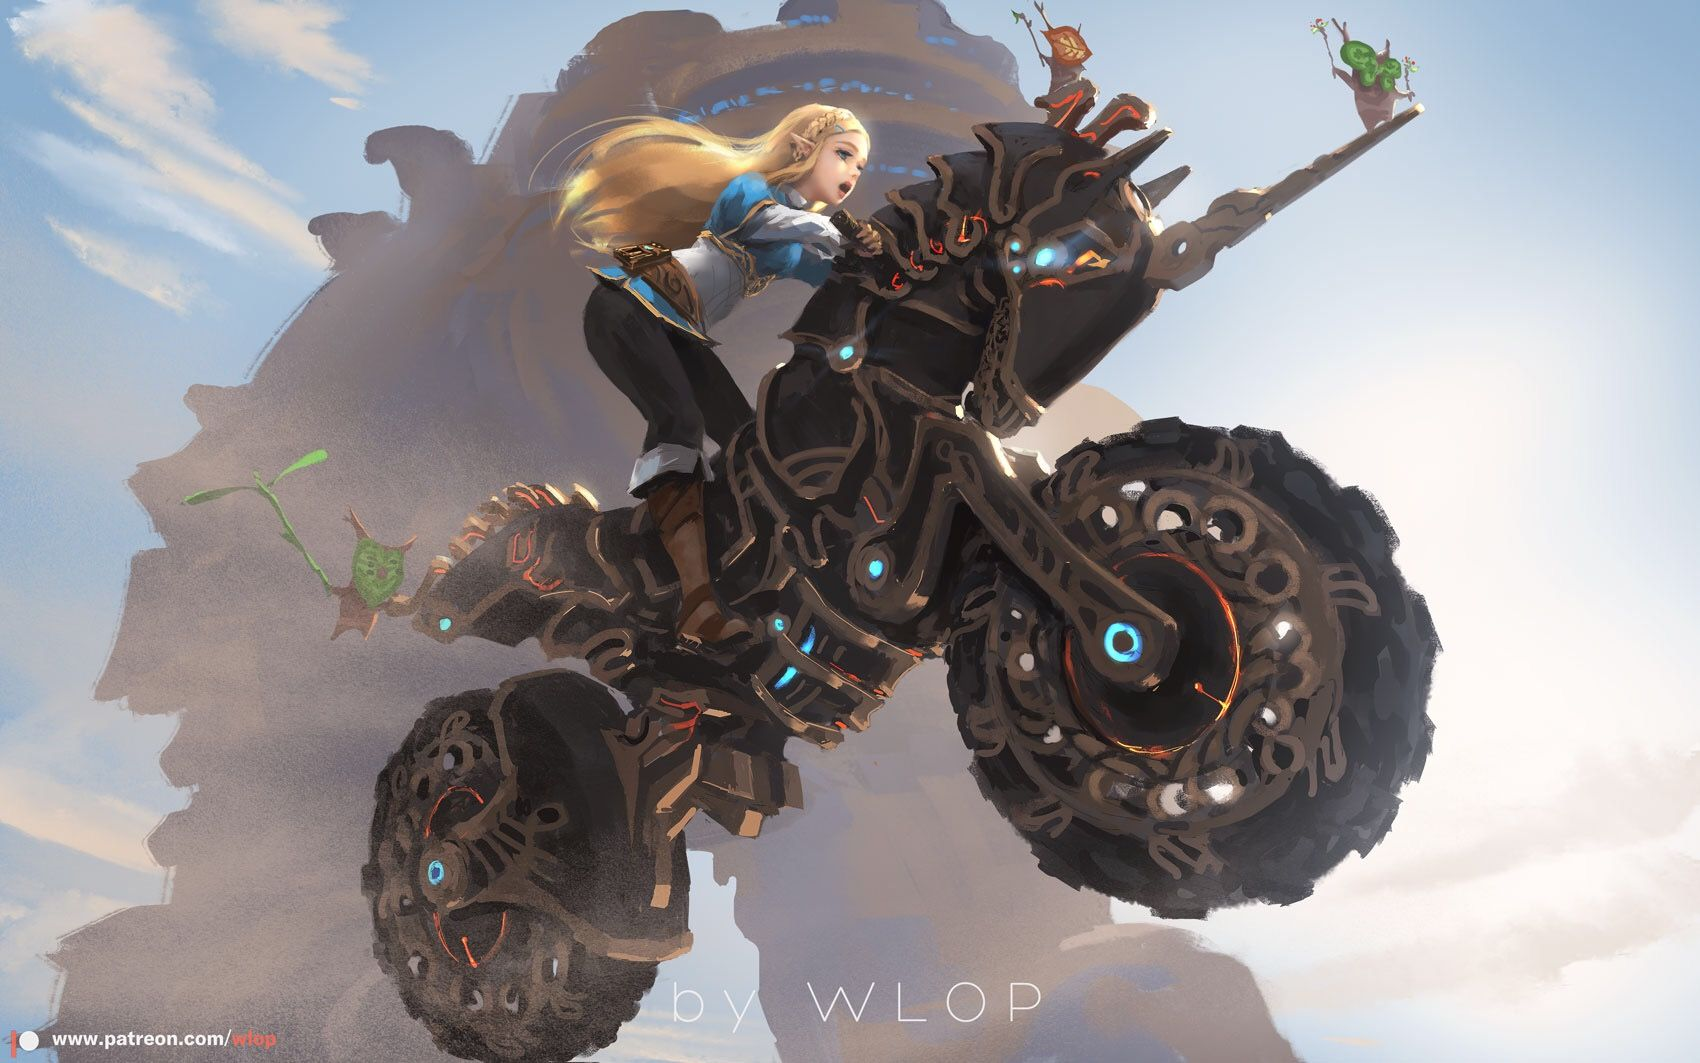 Master cycle zero the legend of zelda breath of the wild legend of zelda breath legend of - How do you get the master cycle zero ...